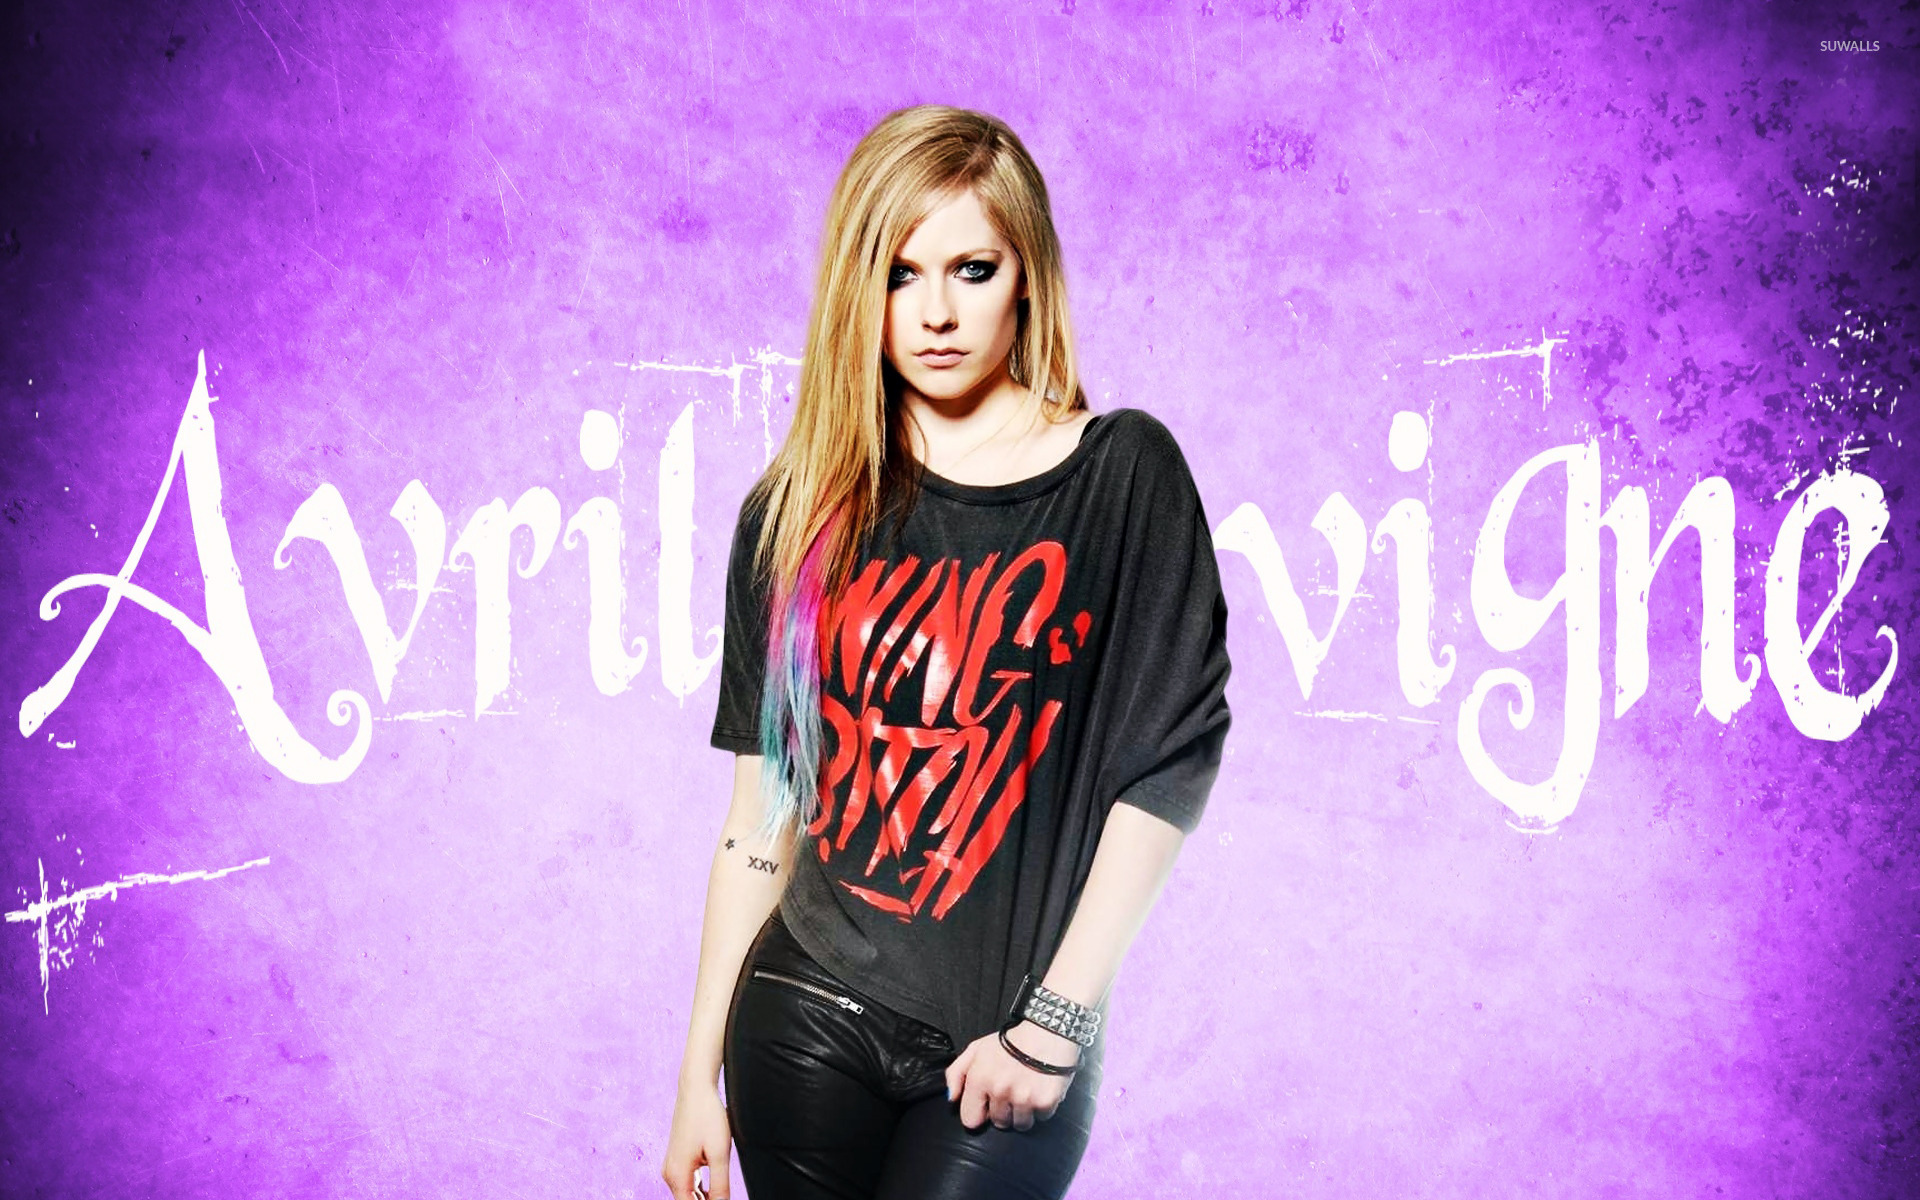 avril lavigne [23] wallpaper - celebrity wallpapers - #14052